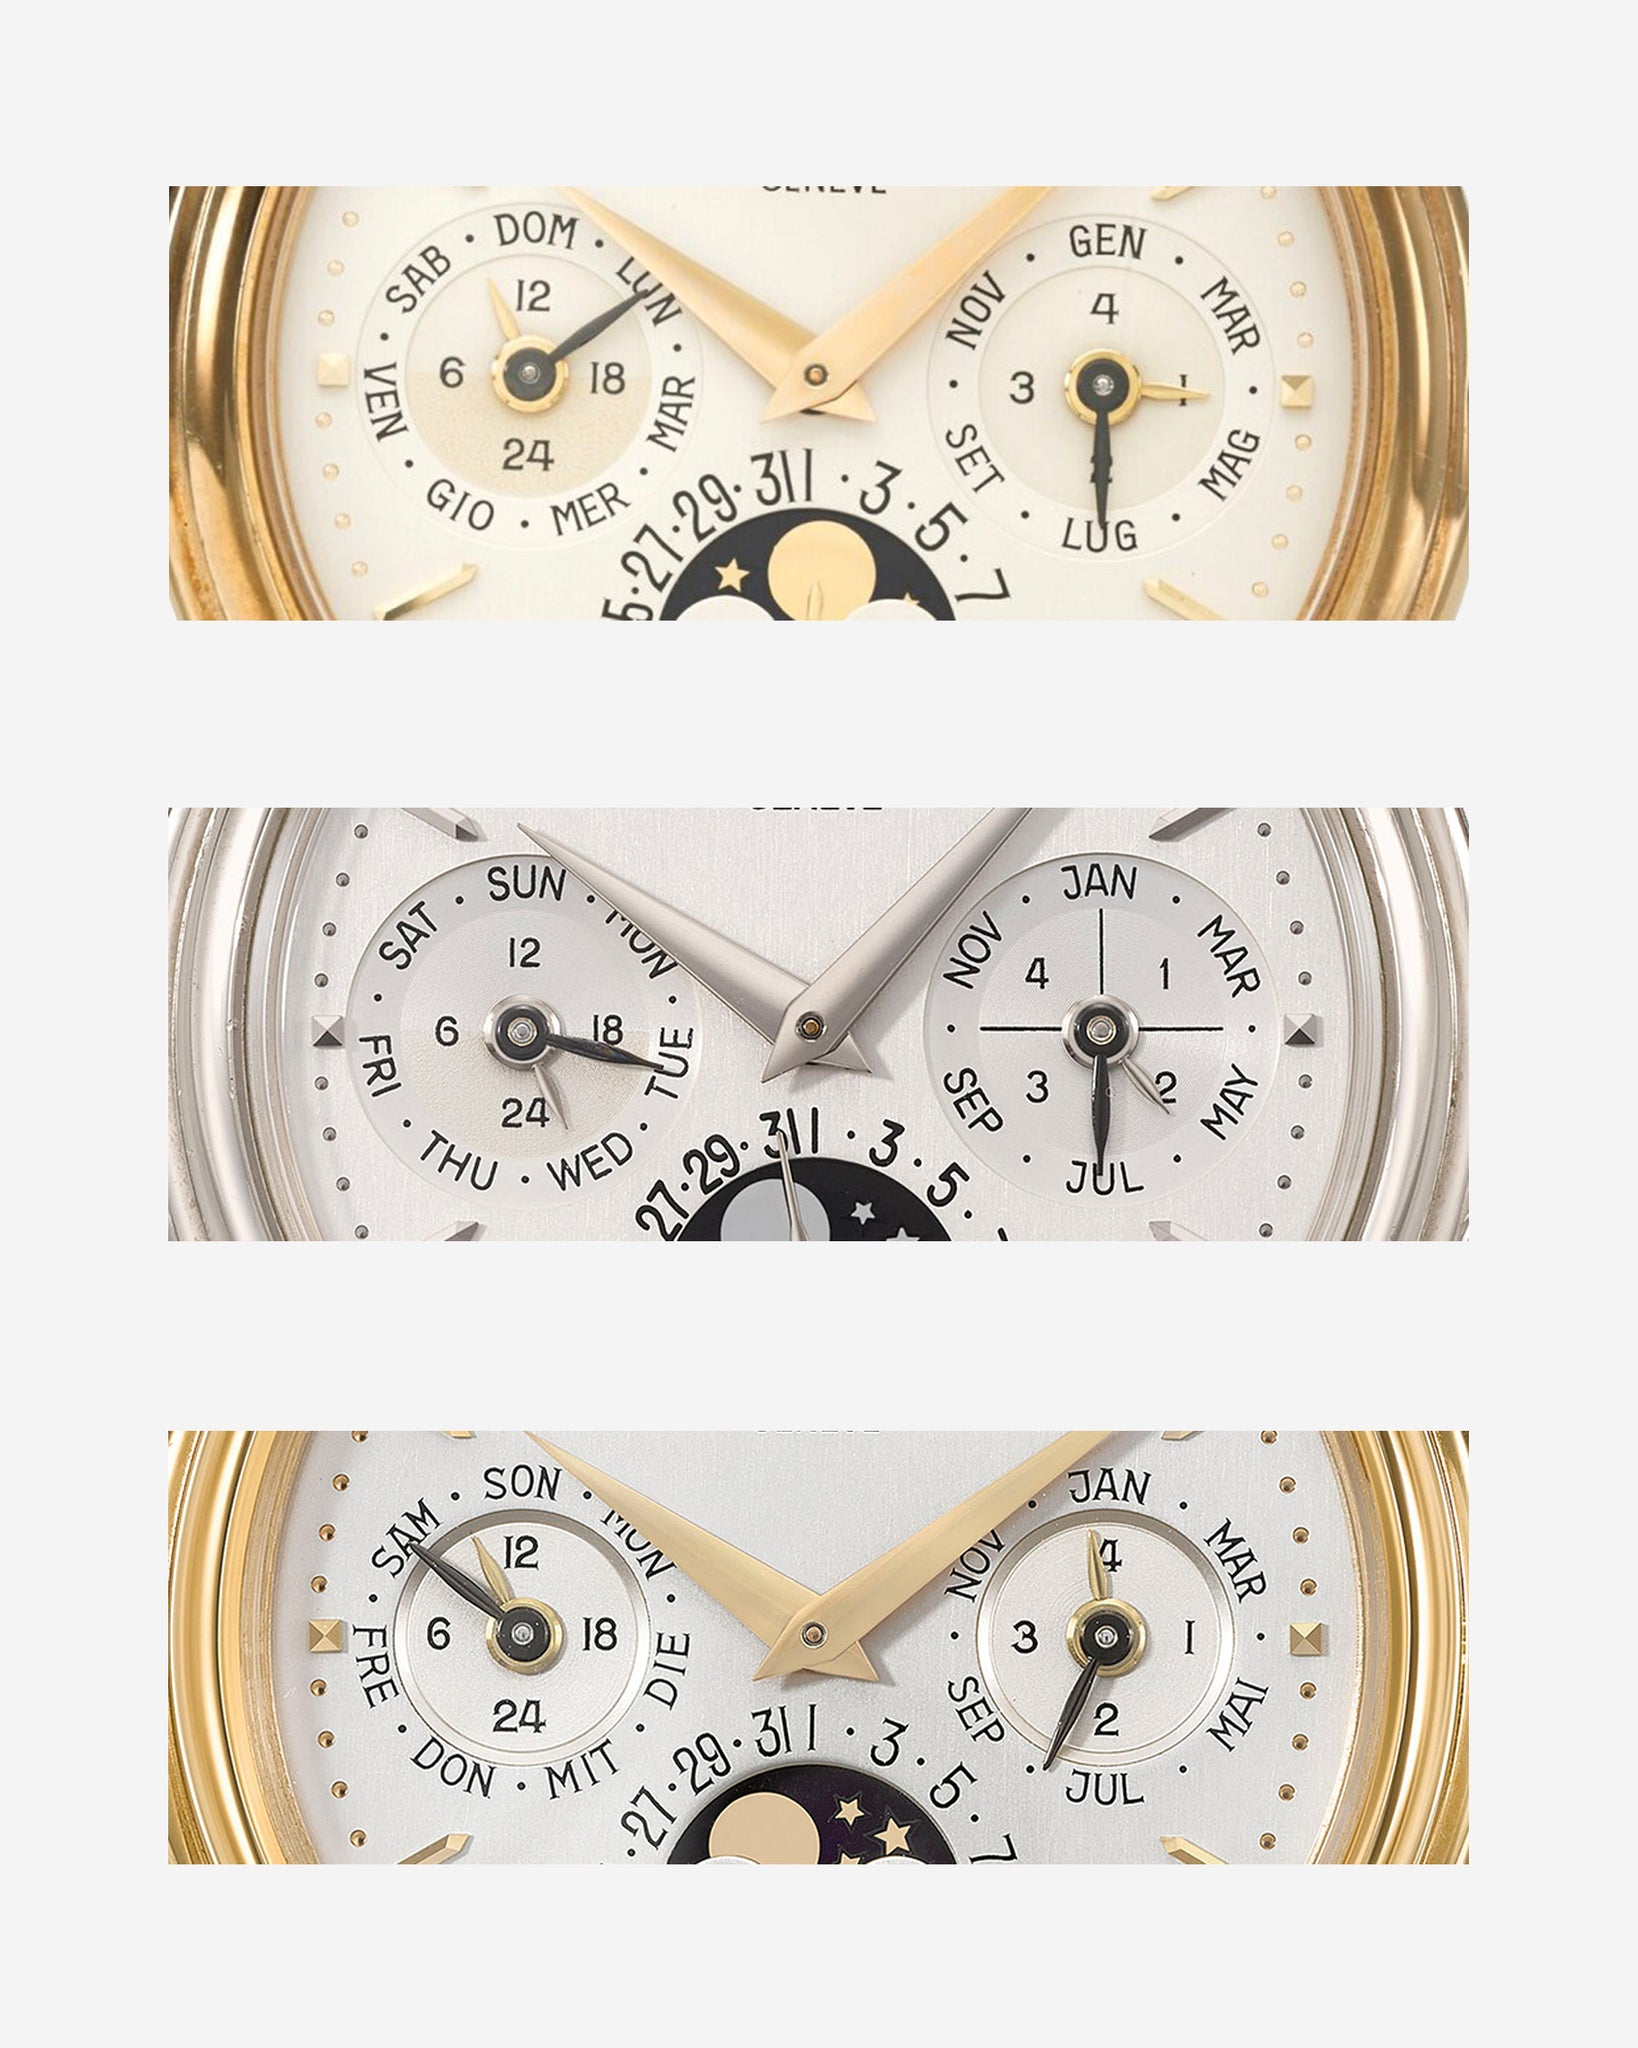 Patek Philippe 3940 dials in Italian, English and German